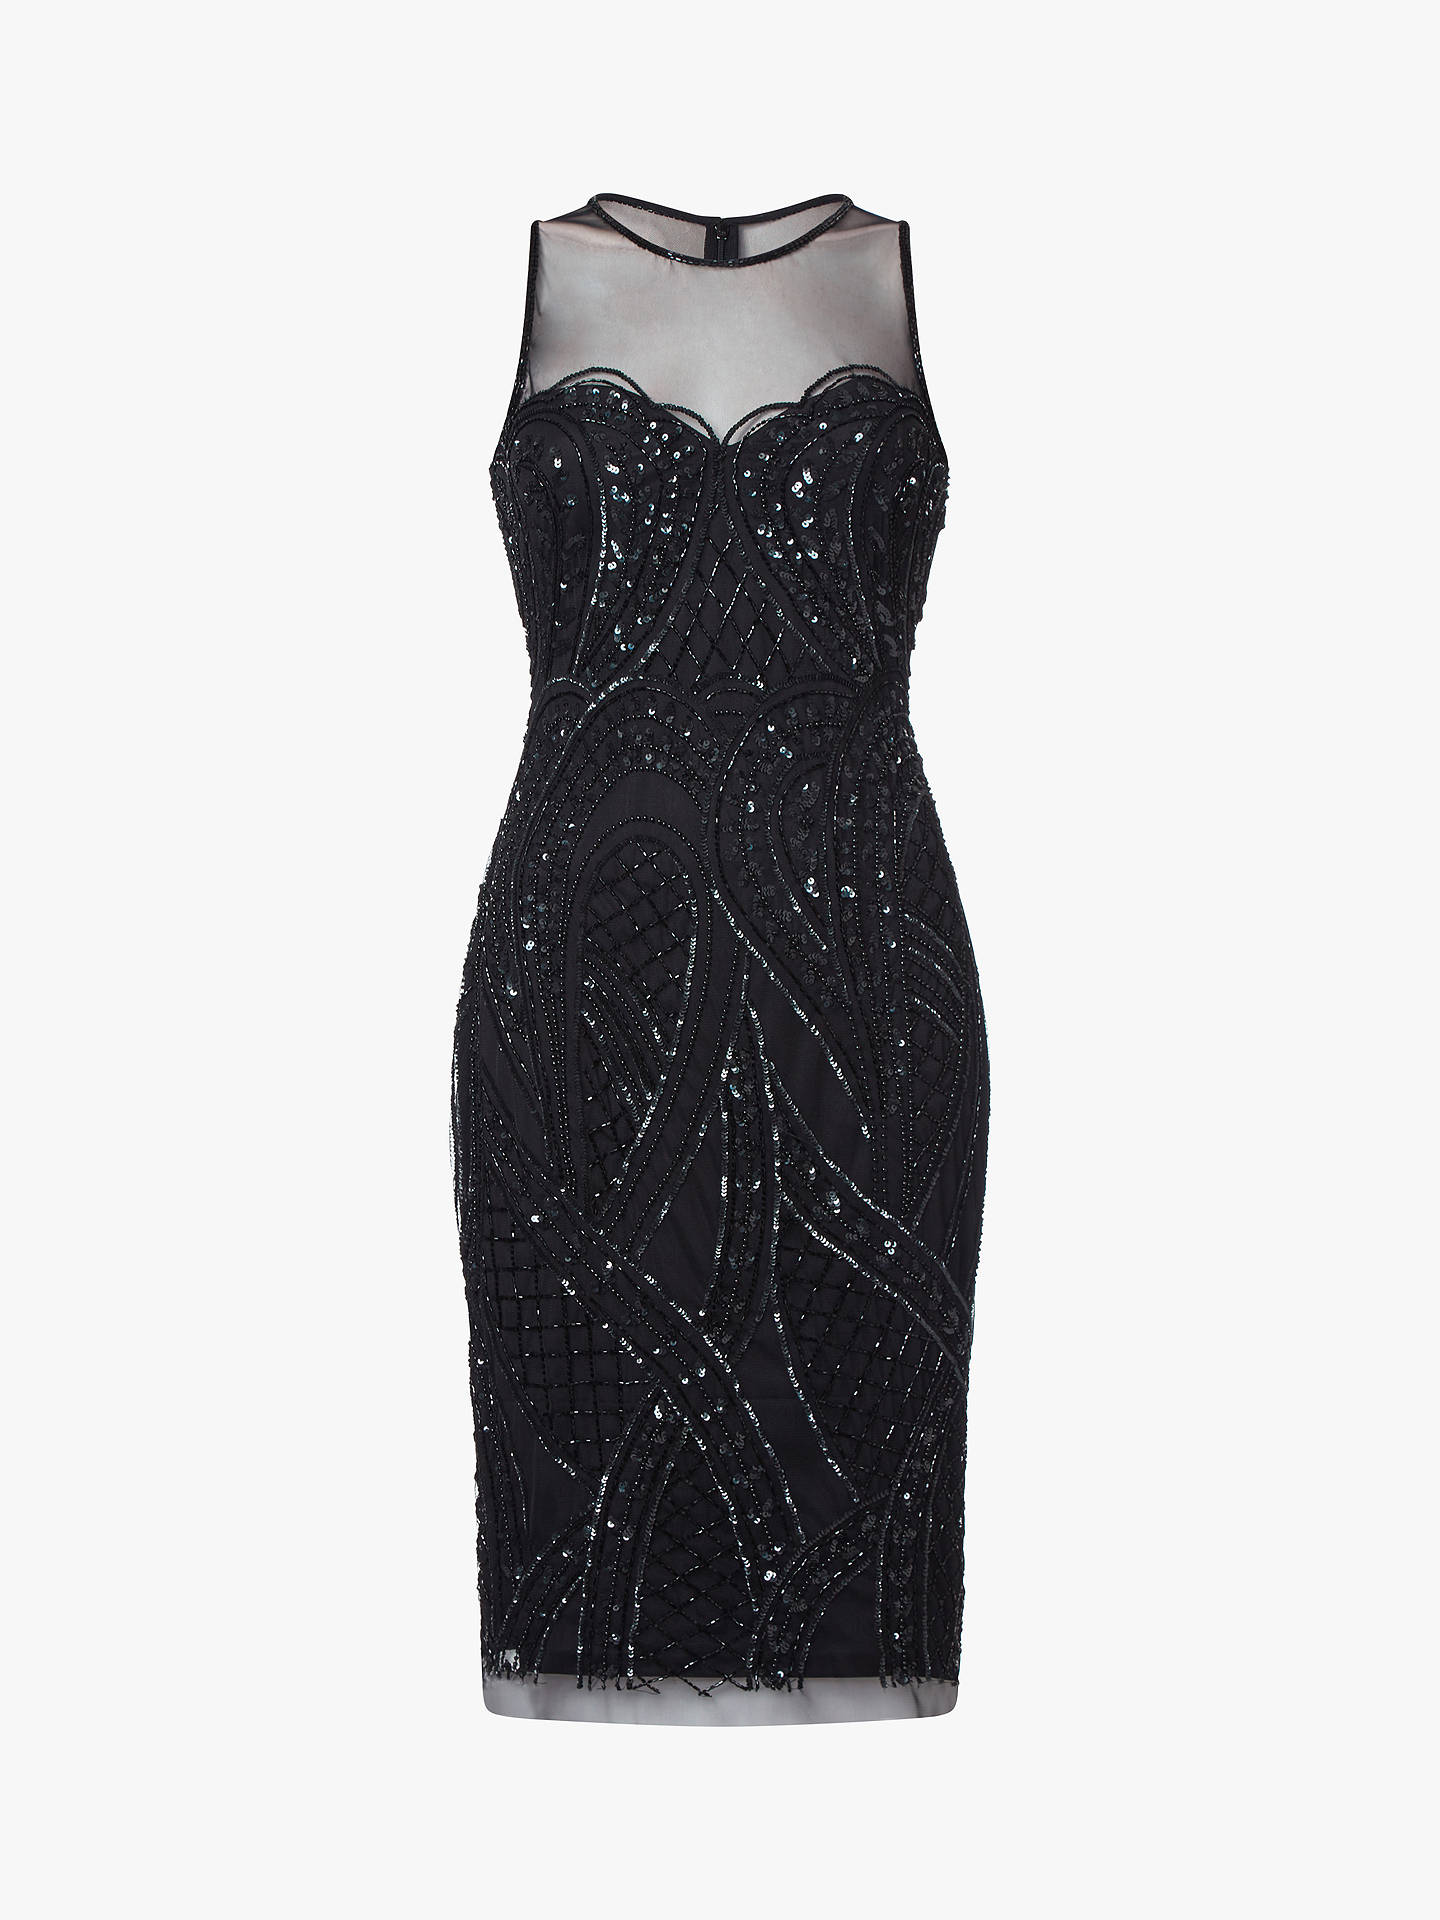 BuyAdrianna Papell Sheer Neckline Beaded Cocktail Dress, Black, 8 Online at johnlewis.com